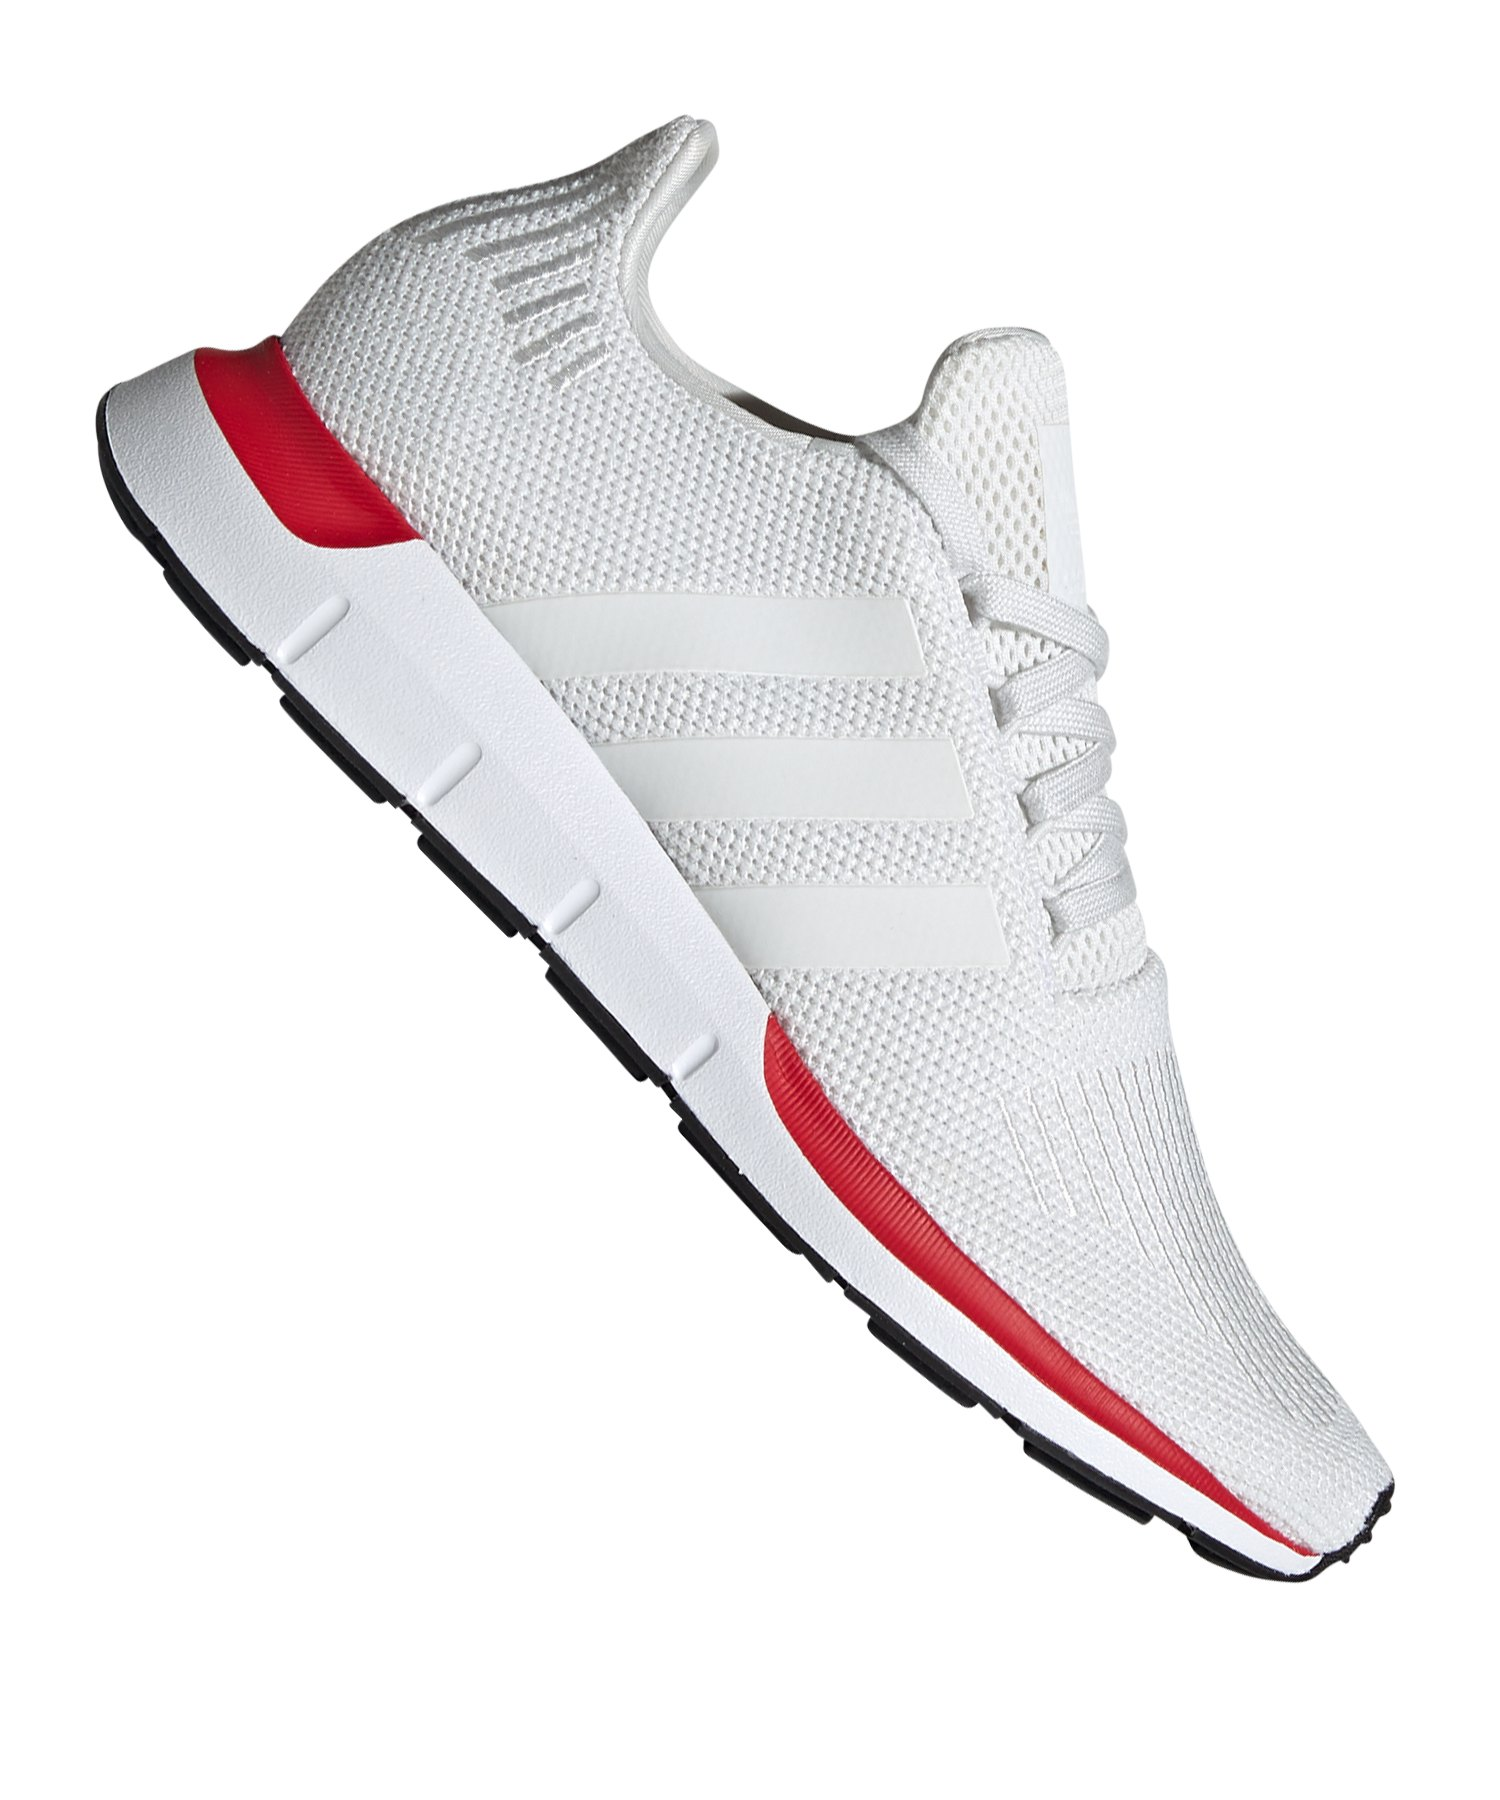 Adidas Swift Running Originals Originals Adidas Weiss Originals Adidas Weiss Swift Swift Running QrdsthCxB